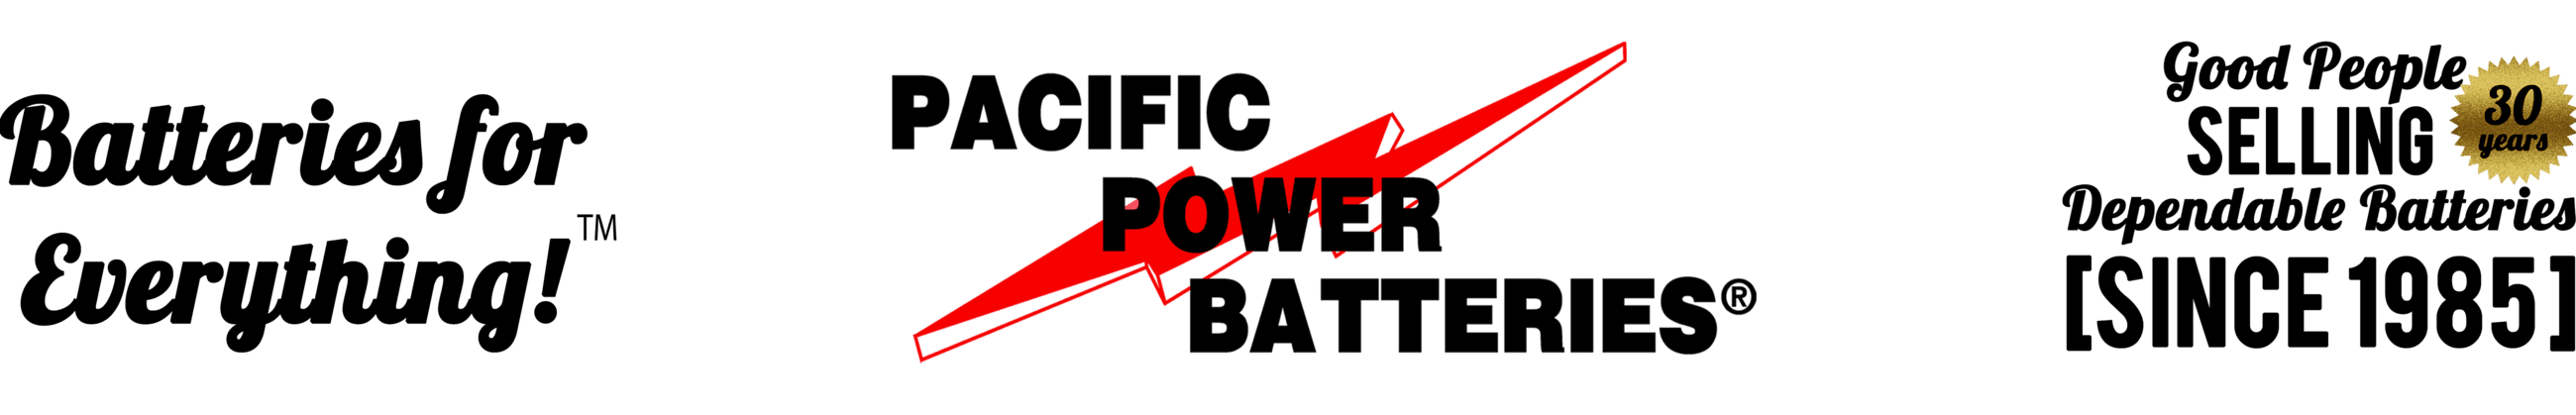 PacificPowerBatteries